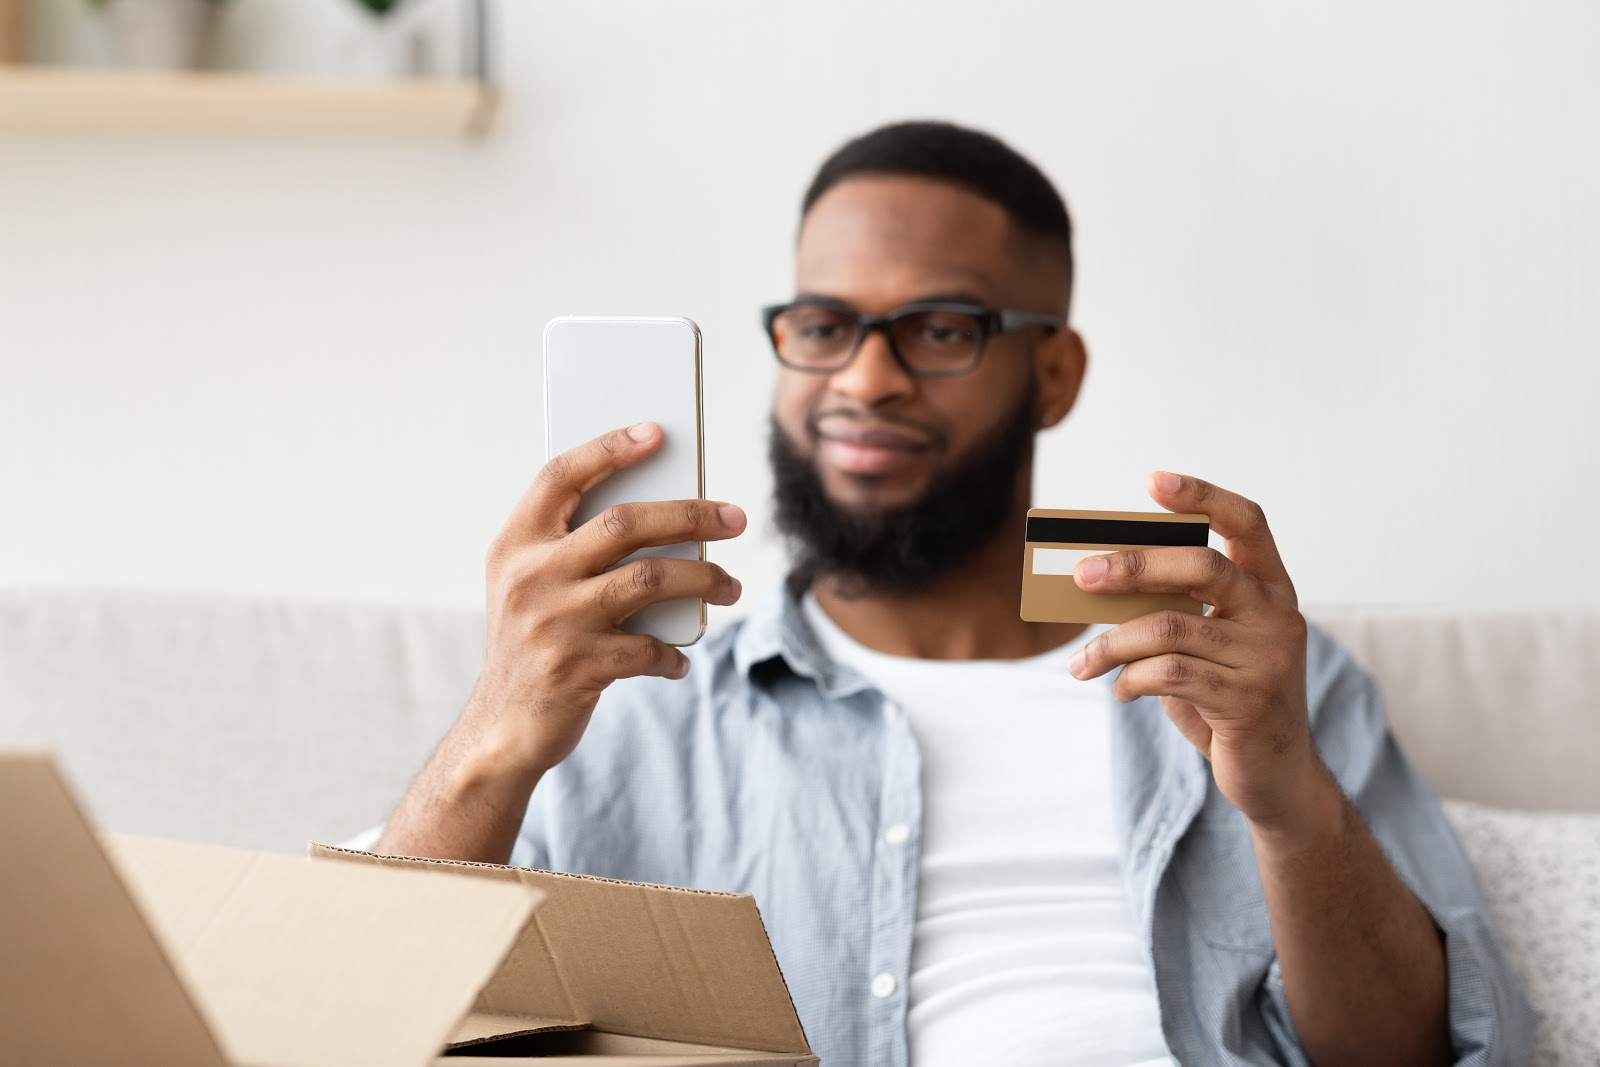 African American man with smartphone and credit card